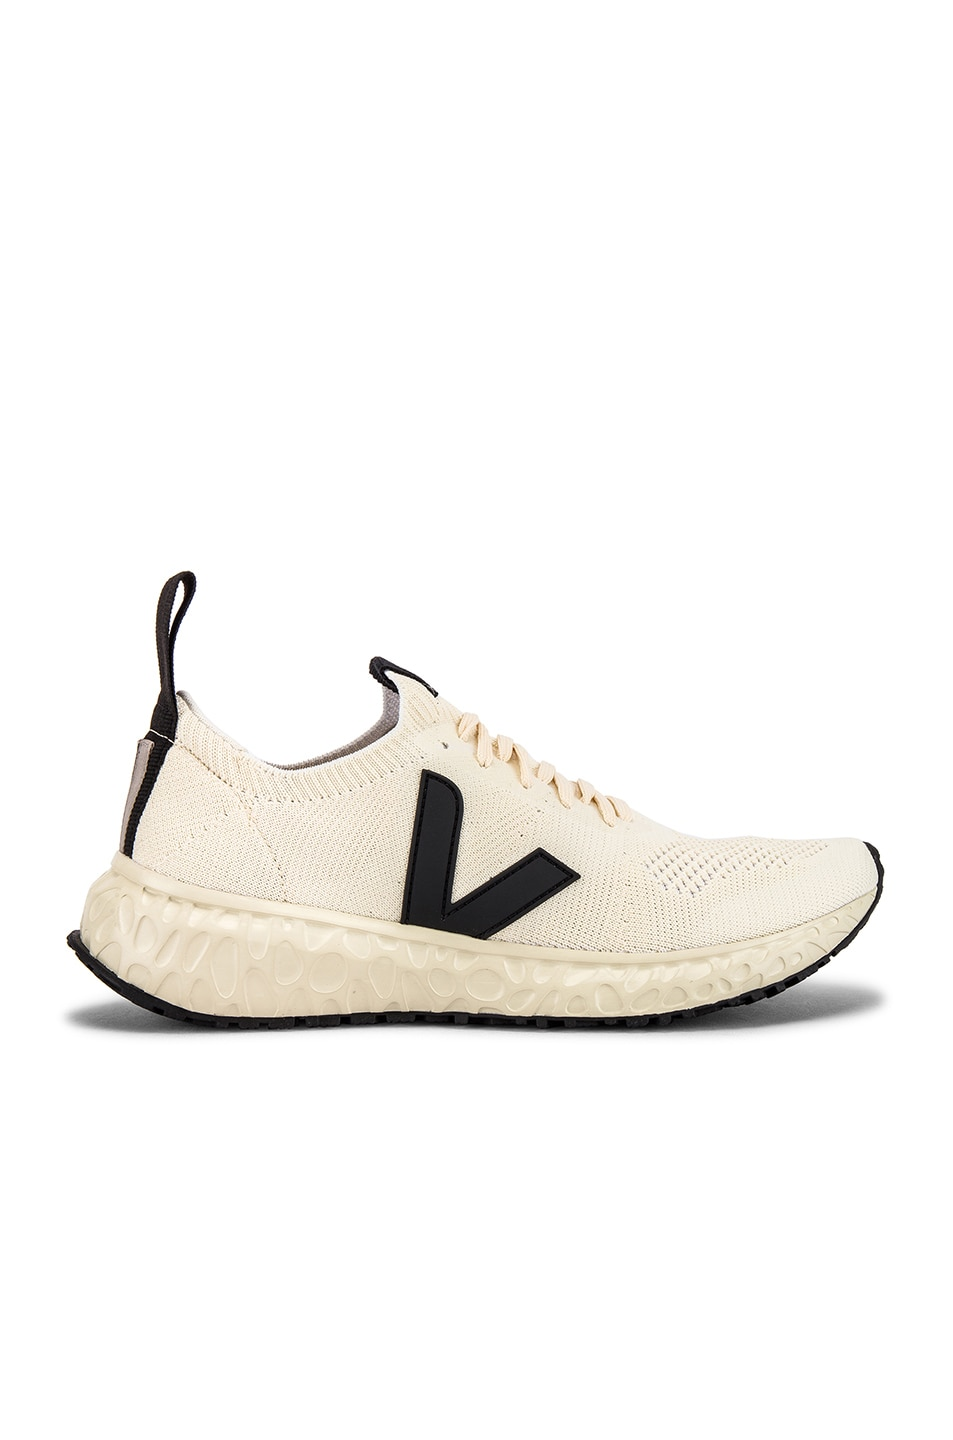 Image 2 of Rick Owens x Veja Sneakers in White in Wite